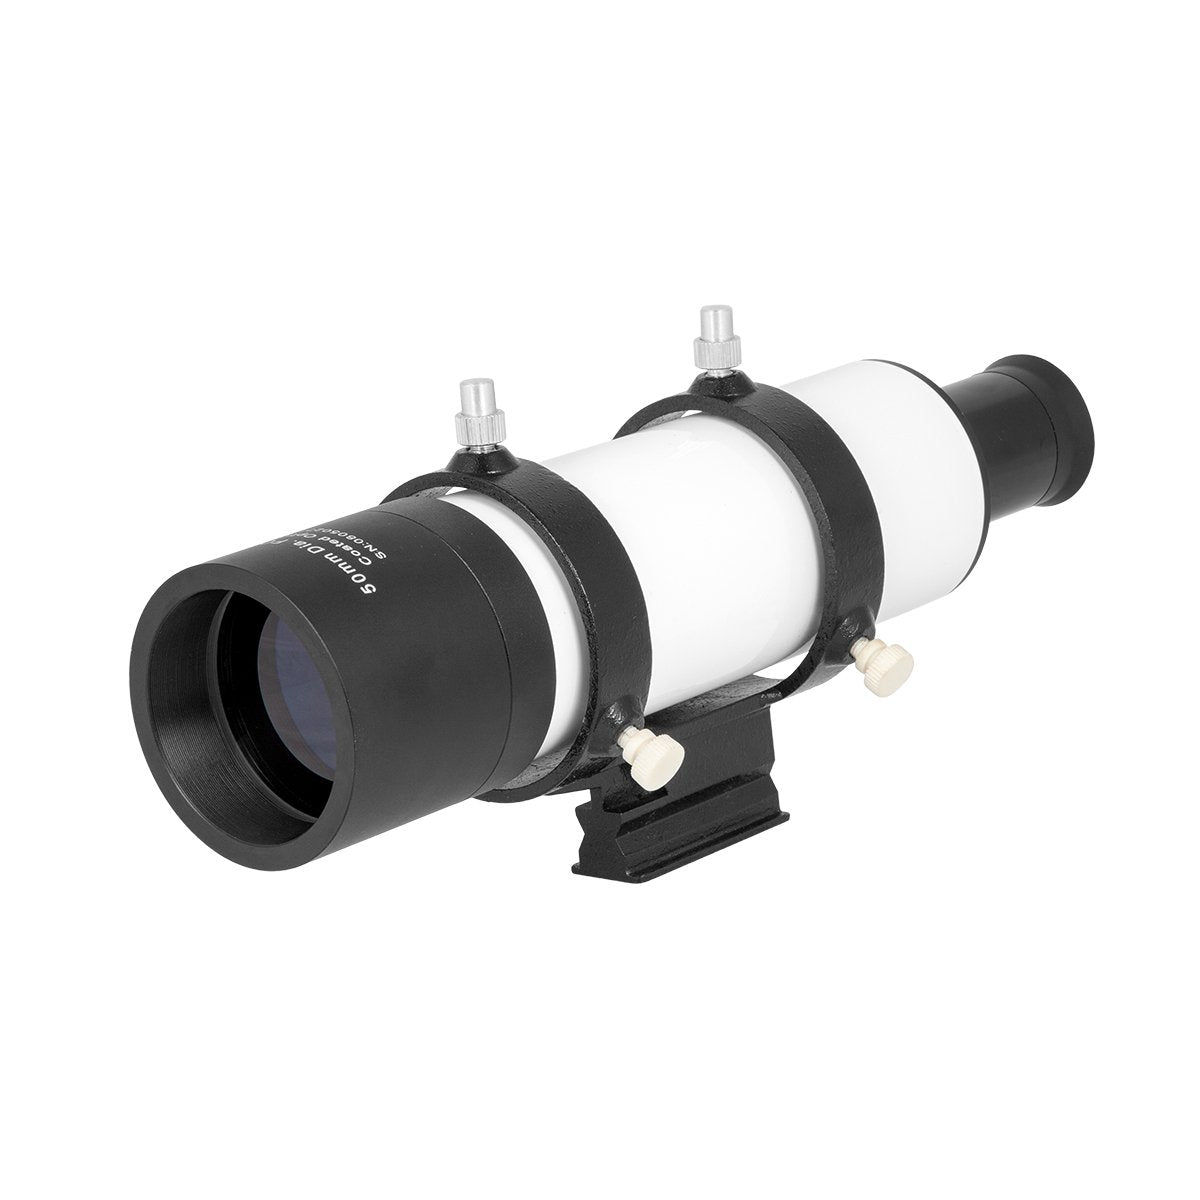 Explore Scientific 8x50mm Non-Illuminated Finder Scope